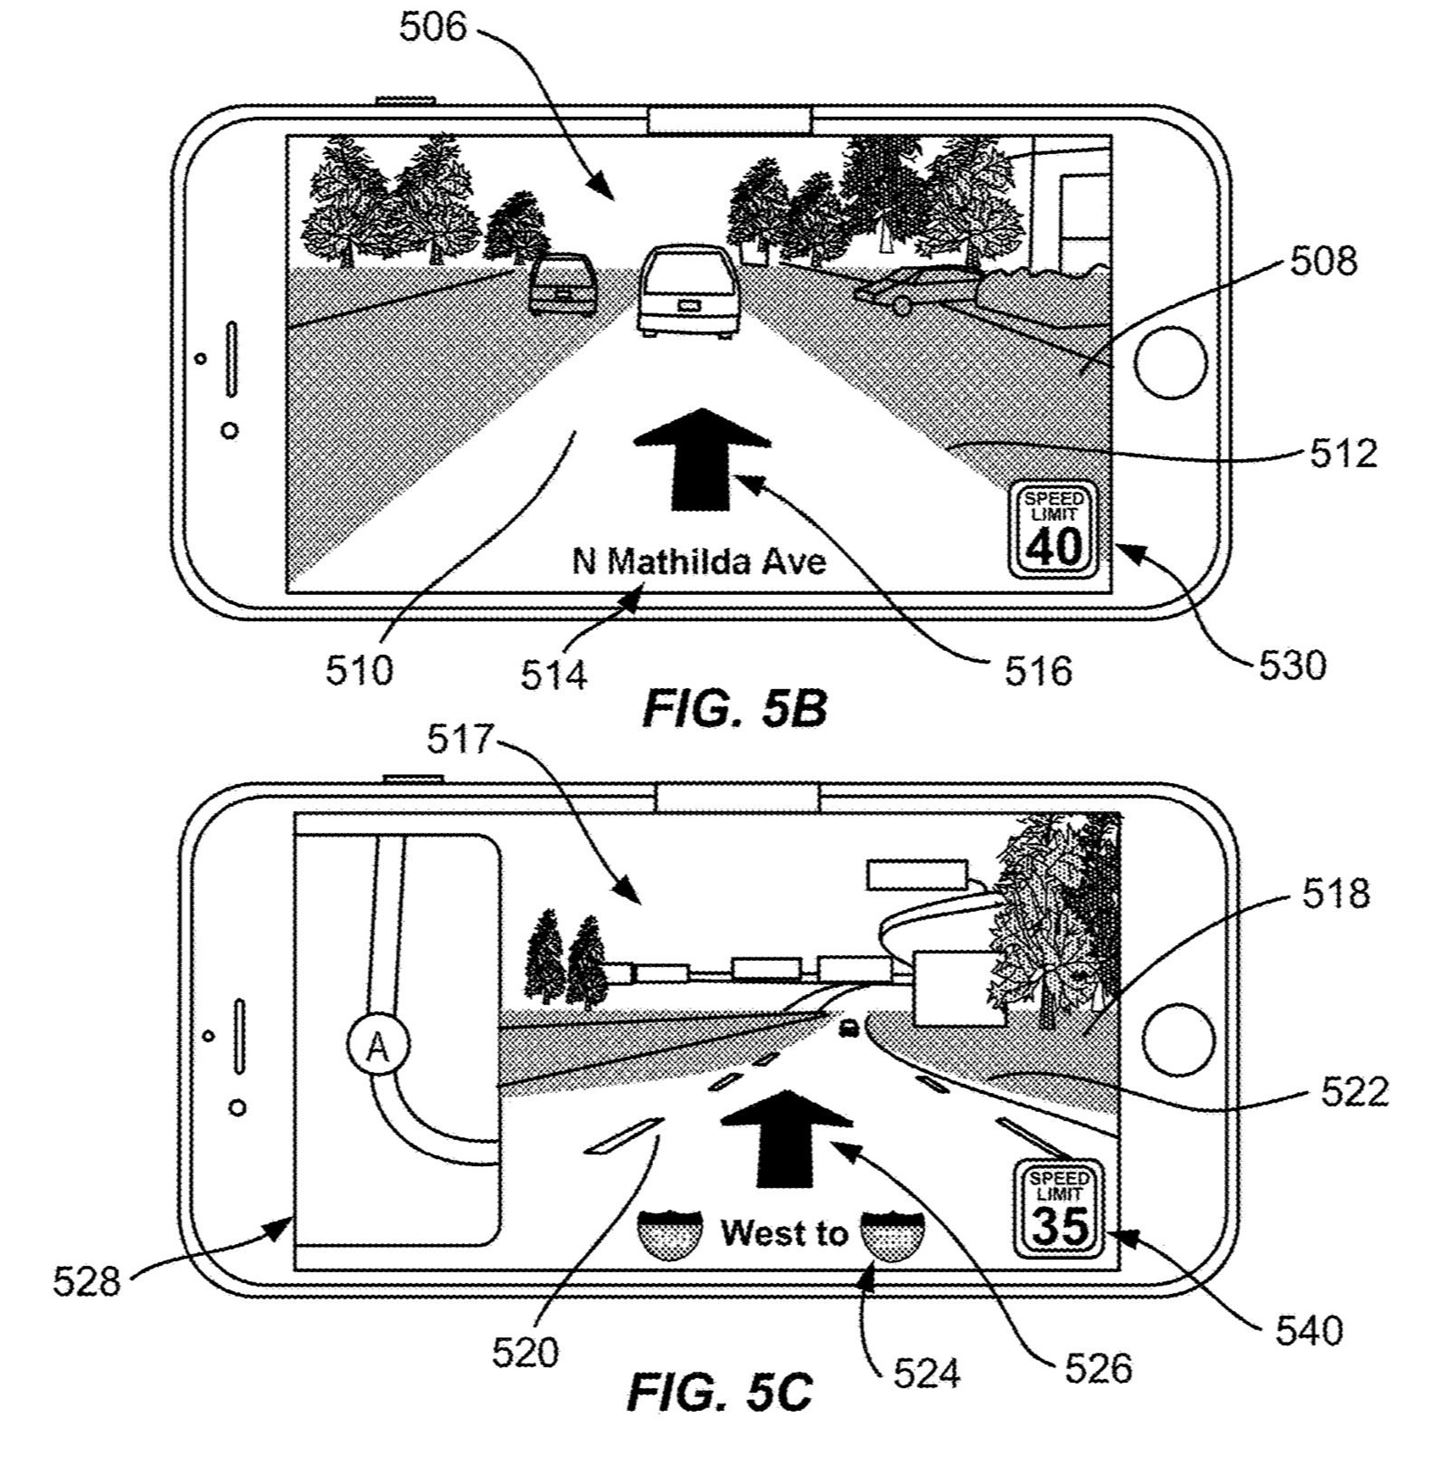 Apple's Latest Patent Proposes Augmented Reality Navigation for Cars via Mobile Device